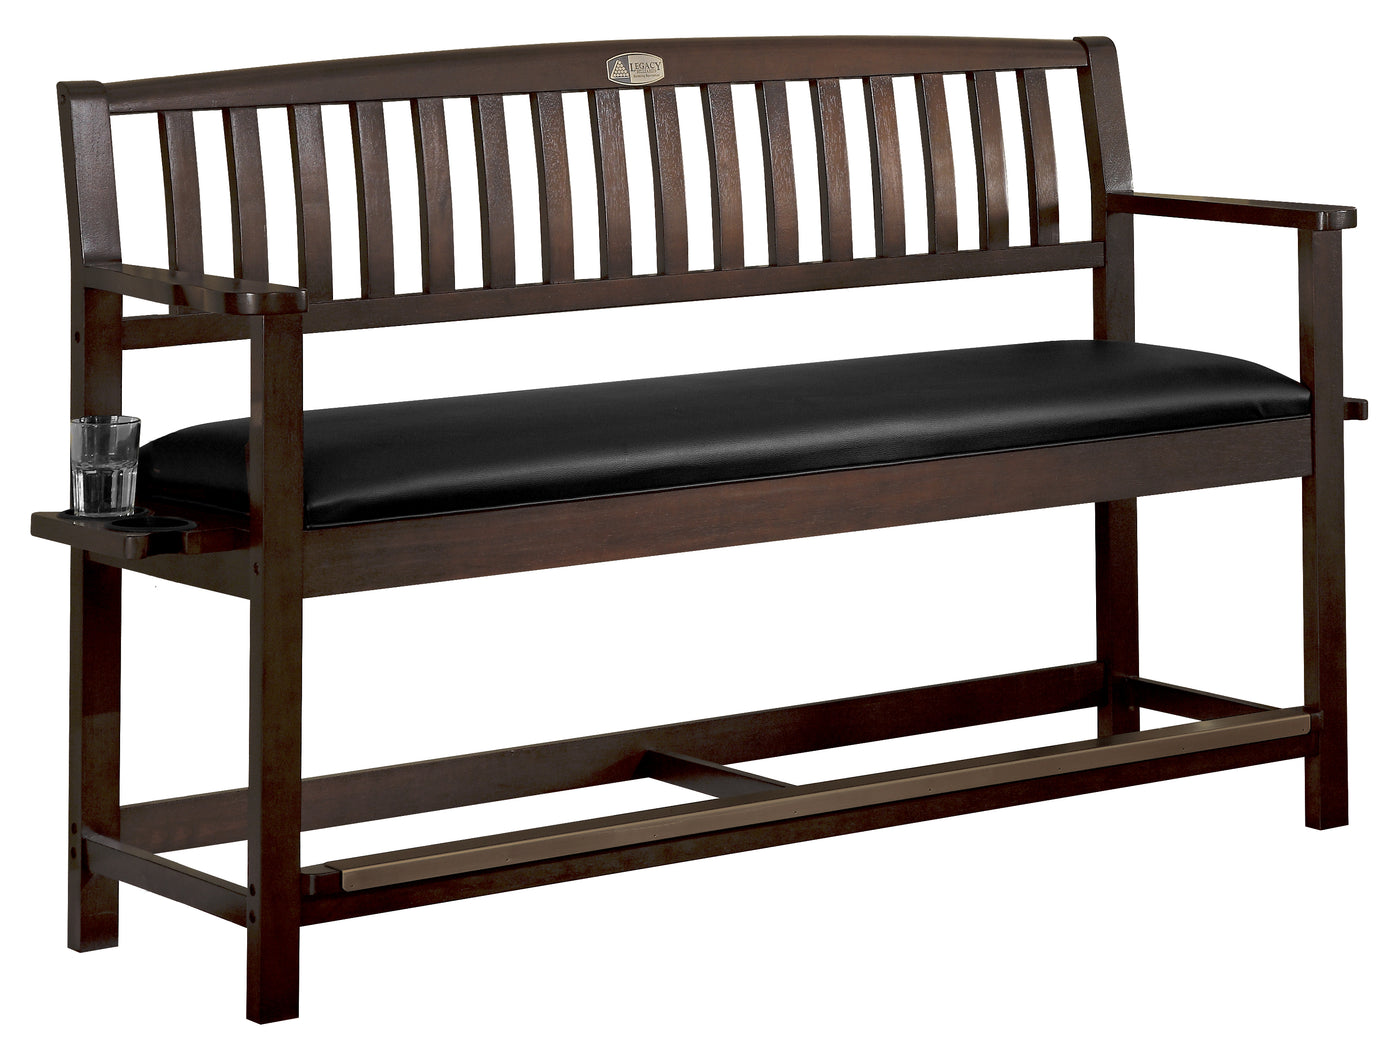 Excellent Classic Backed Storage Bench Legacy Billiards Andrewgaddart Wooden Chair Designs For Living Room Andrewgaddartcom